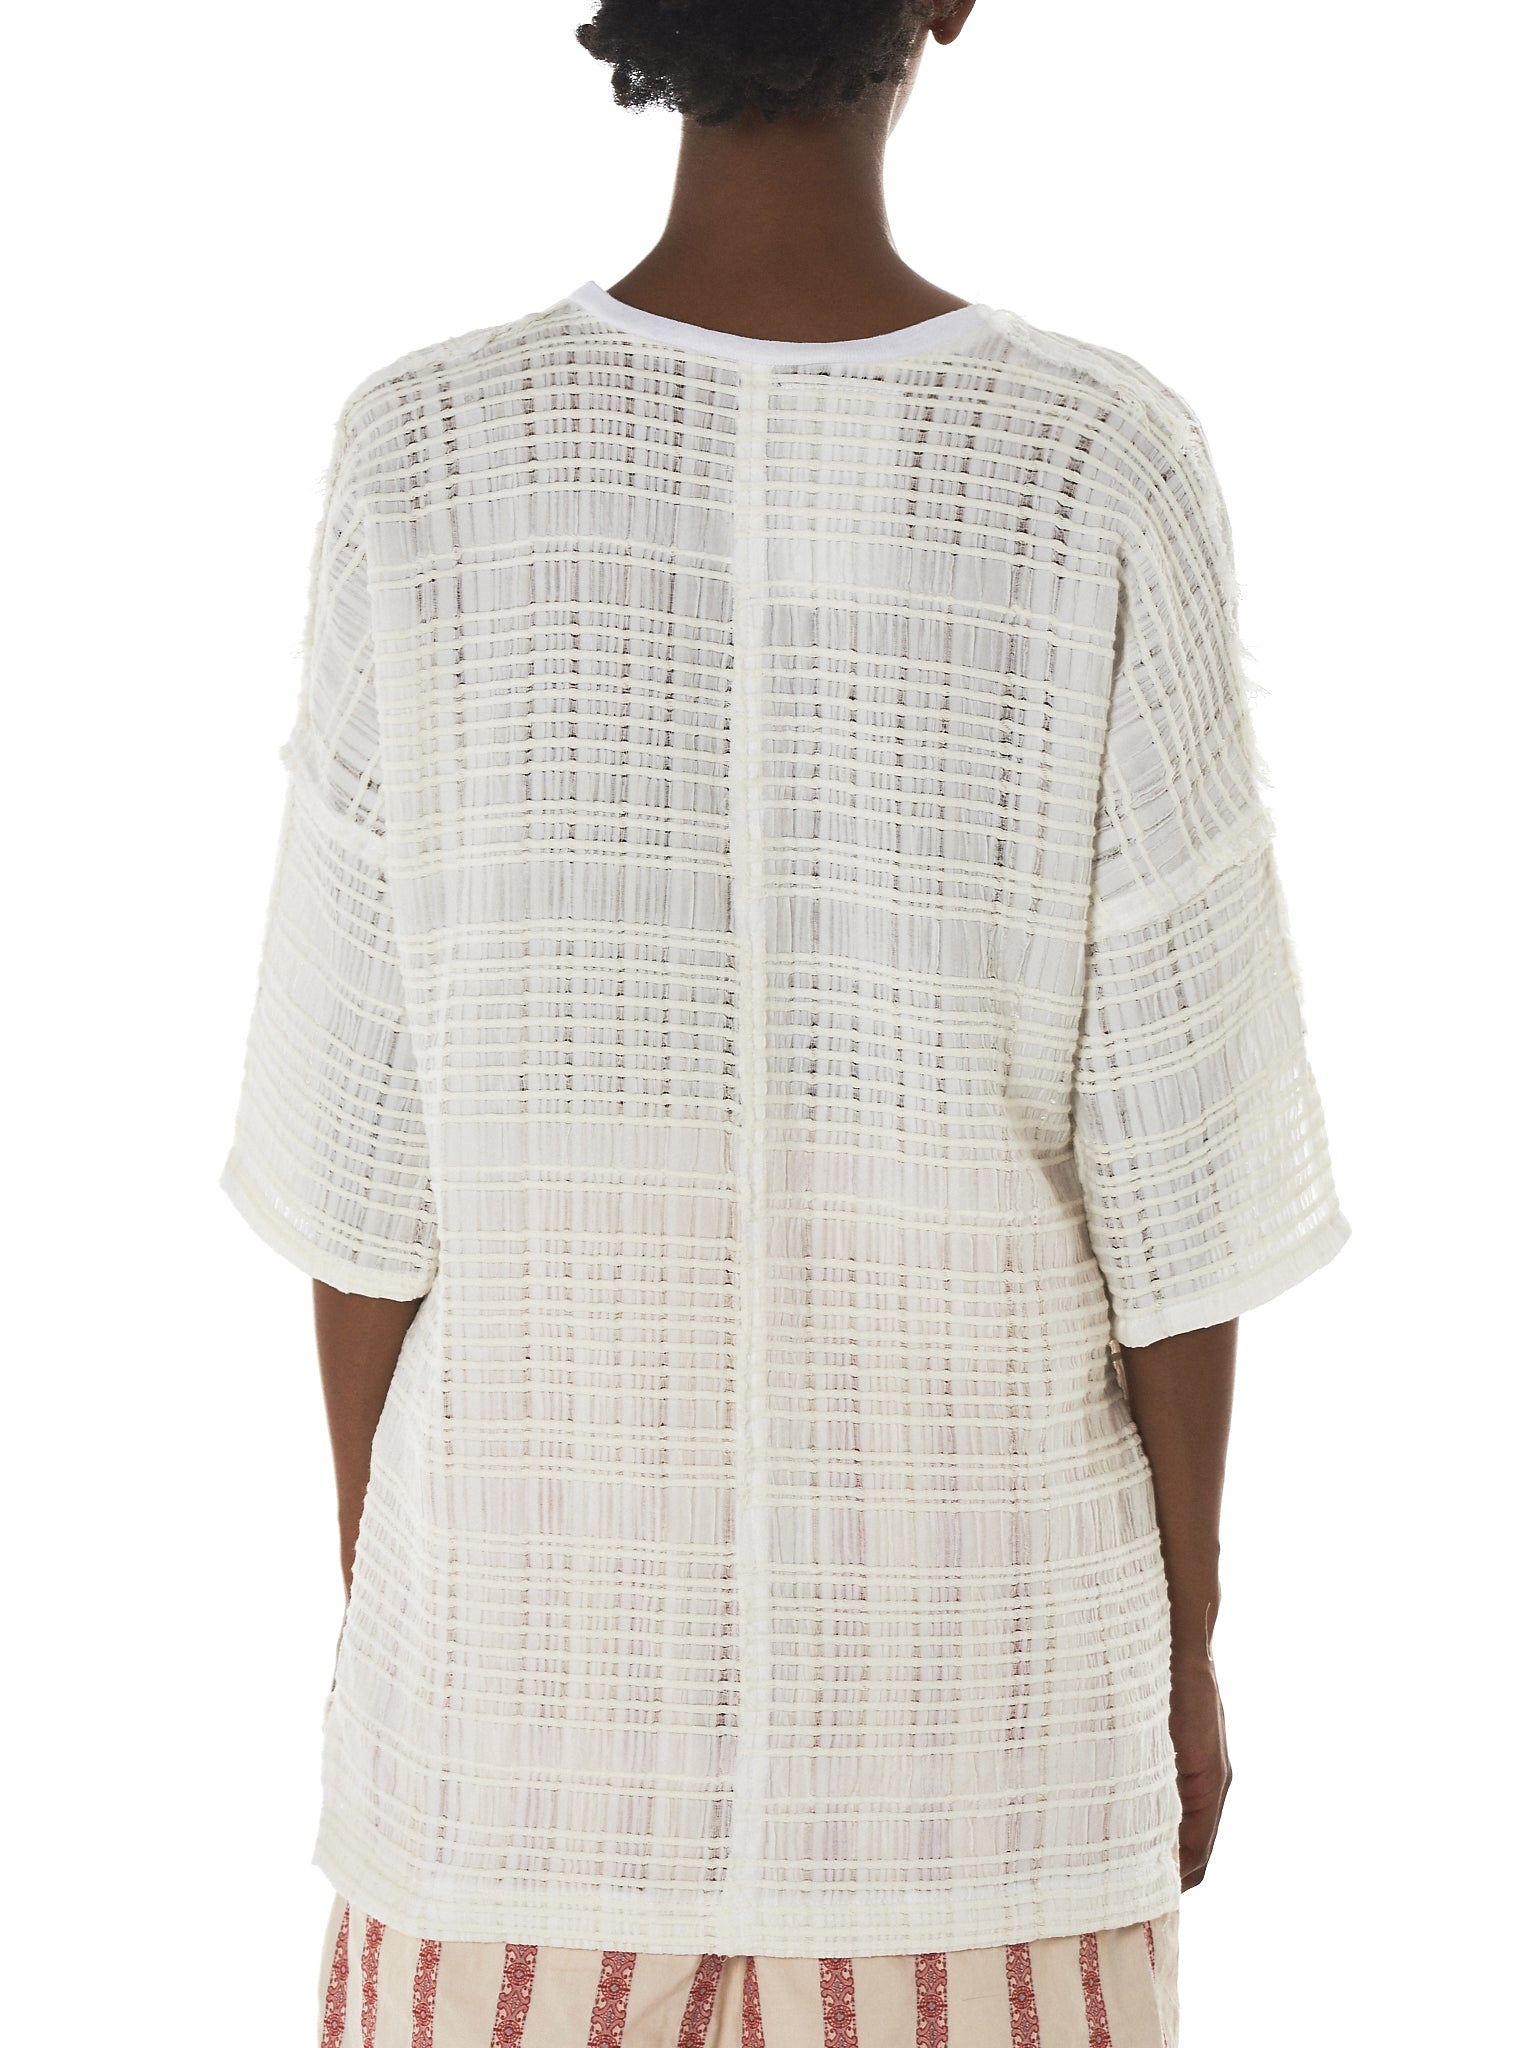 Weaved Check Split Sleeve Tee (DGN-T1-WHITE)